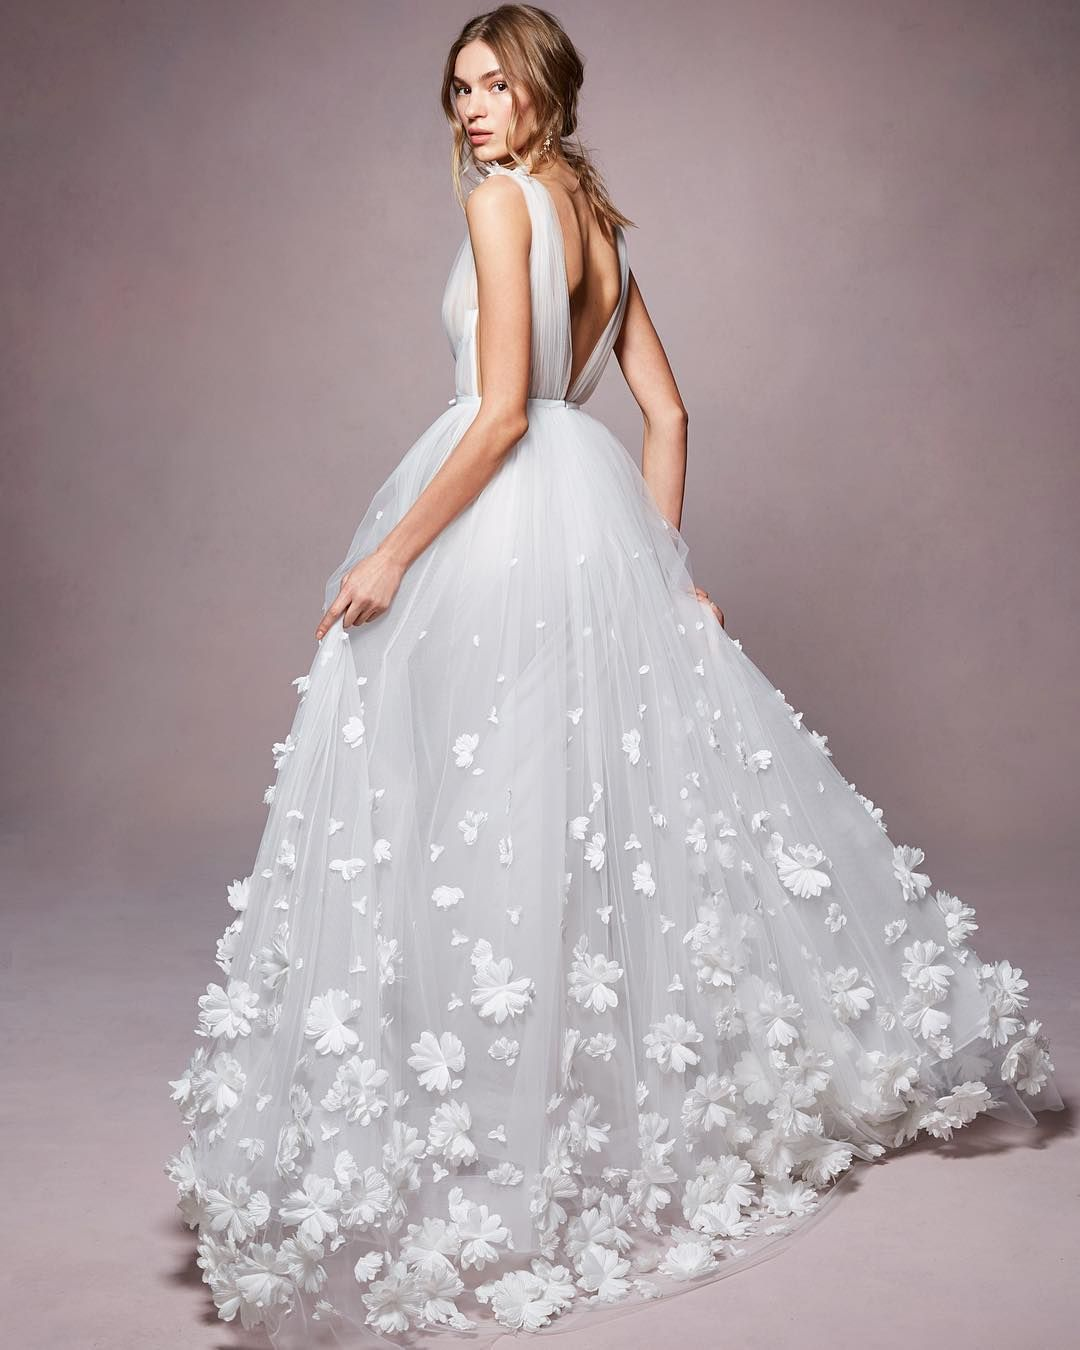 Marchesa On Instagram A First Look At Spring Summer 2020 Marchesa Notte Bridal We Are Excited To Unve Marchesa Bridal Marchesa Wedding Dress Wedding Dresses